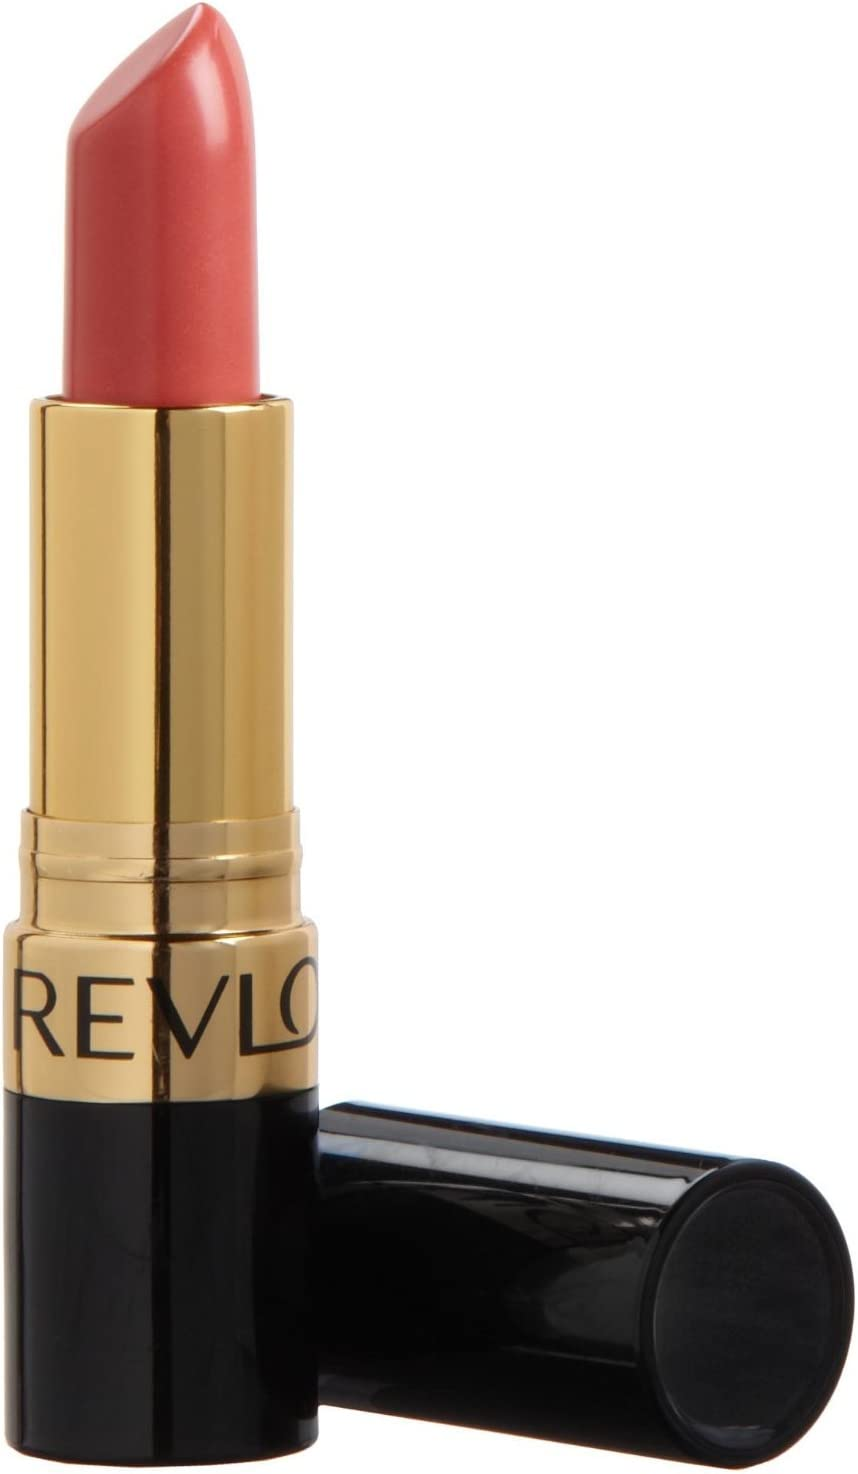 Revlon Super Lustrous Lipstick Creme, Coralberry, Coral Berry 674 (Pack of 6)